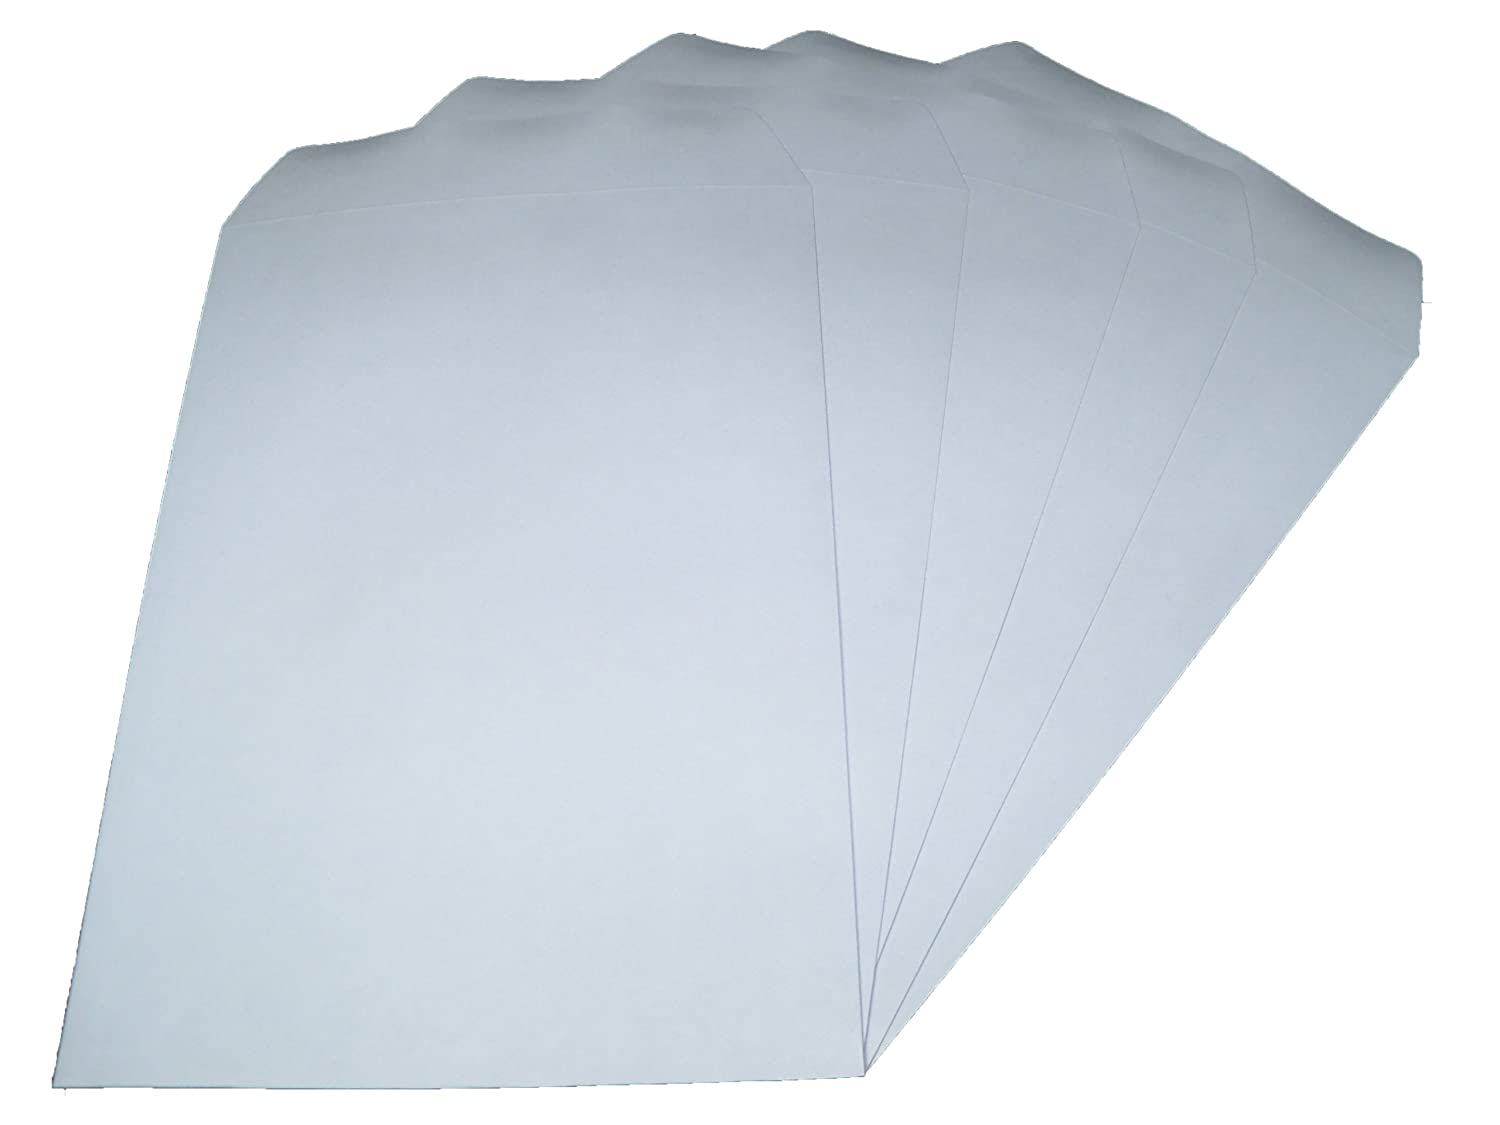 25 x C4/A4 Plain White SELF Seal ENVELOPES 90gsm SS globe